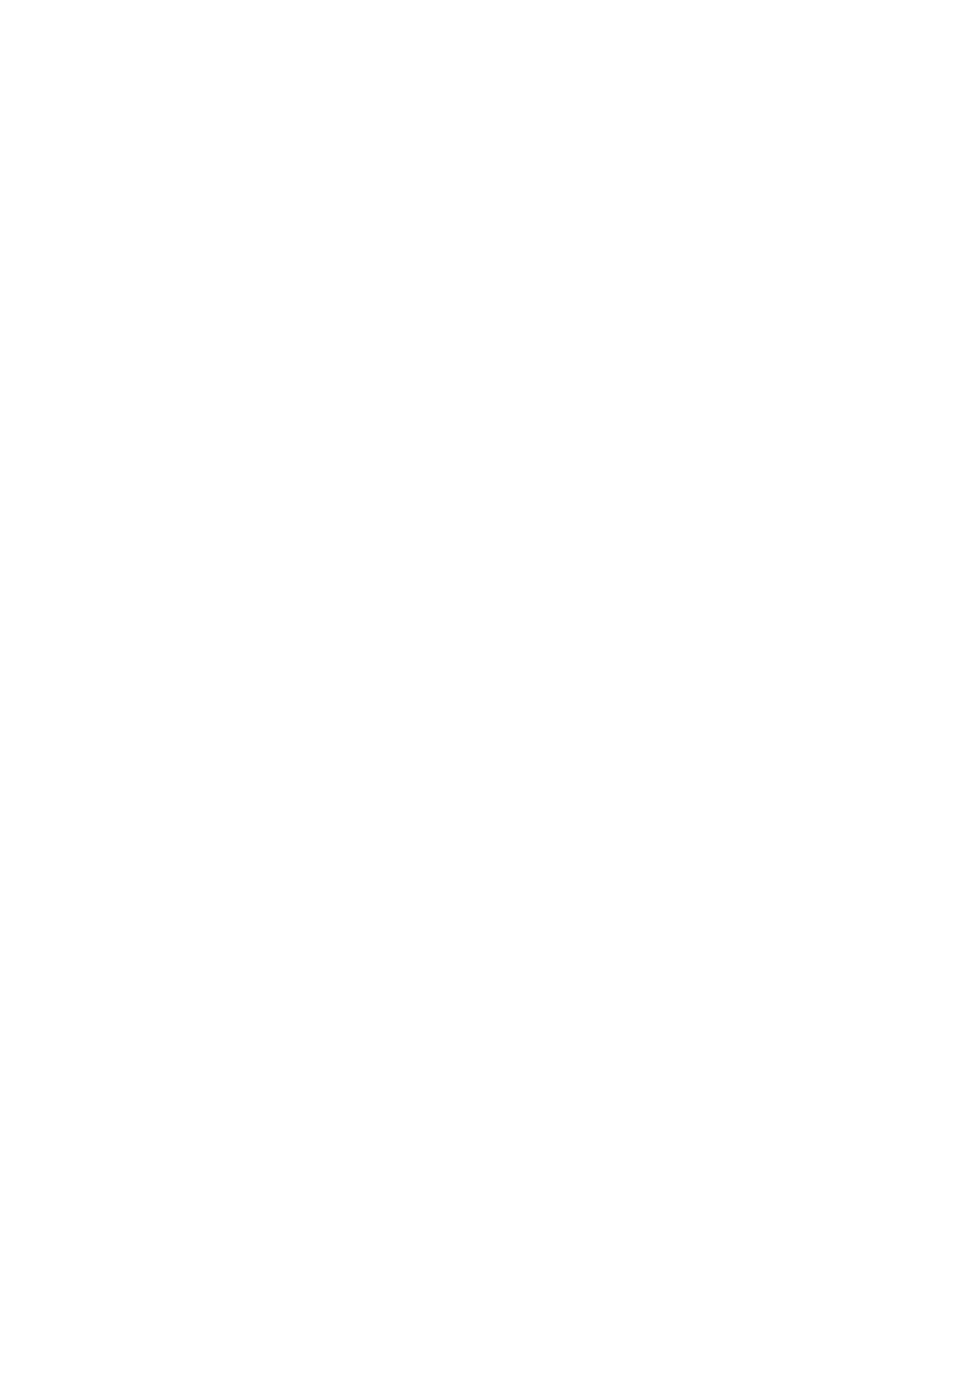 color_ultime_home_logo_970x1400